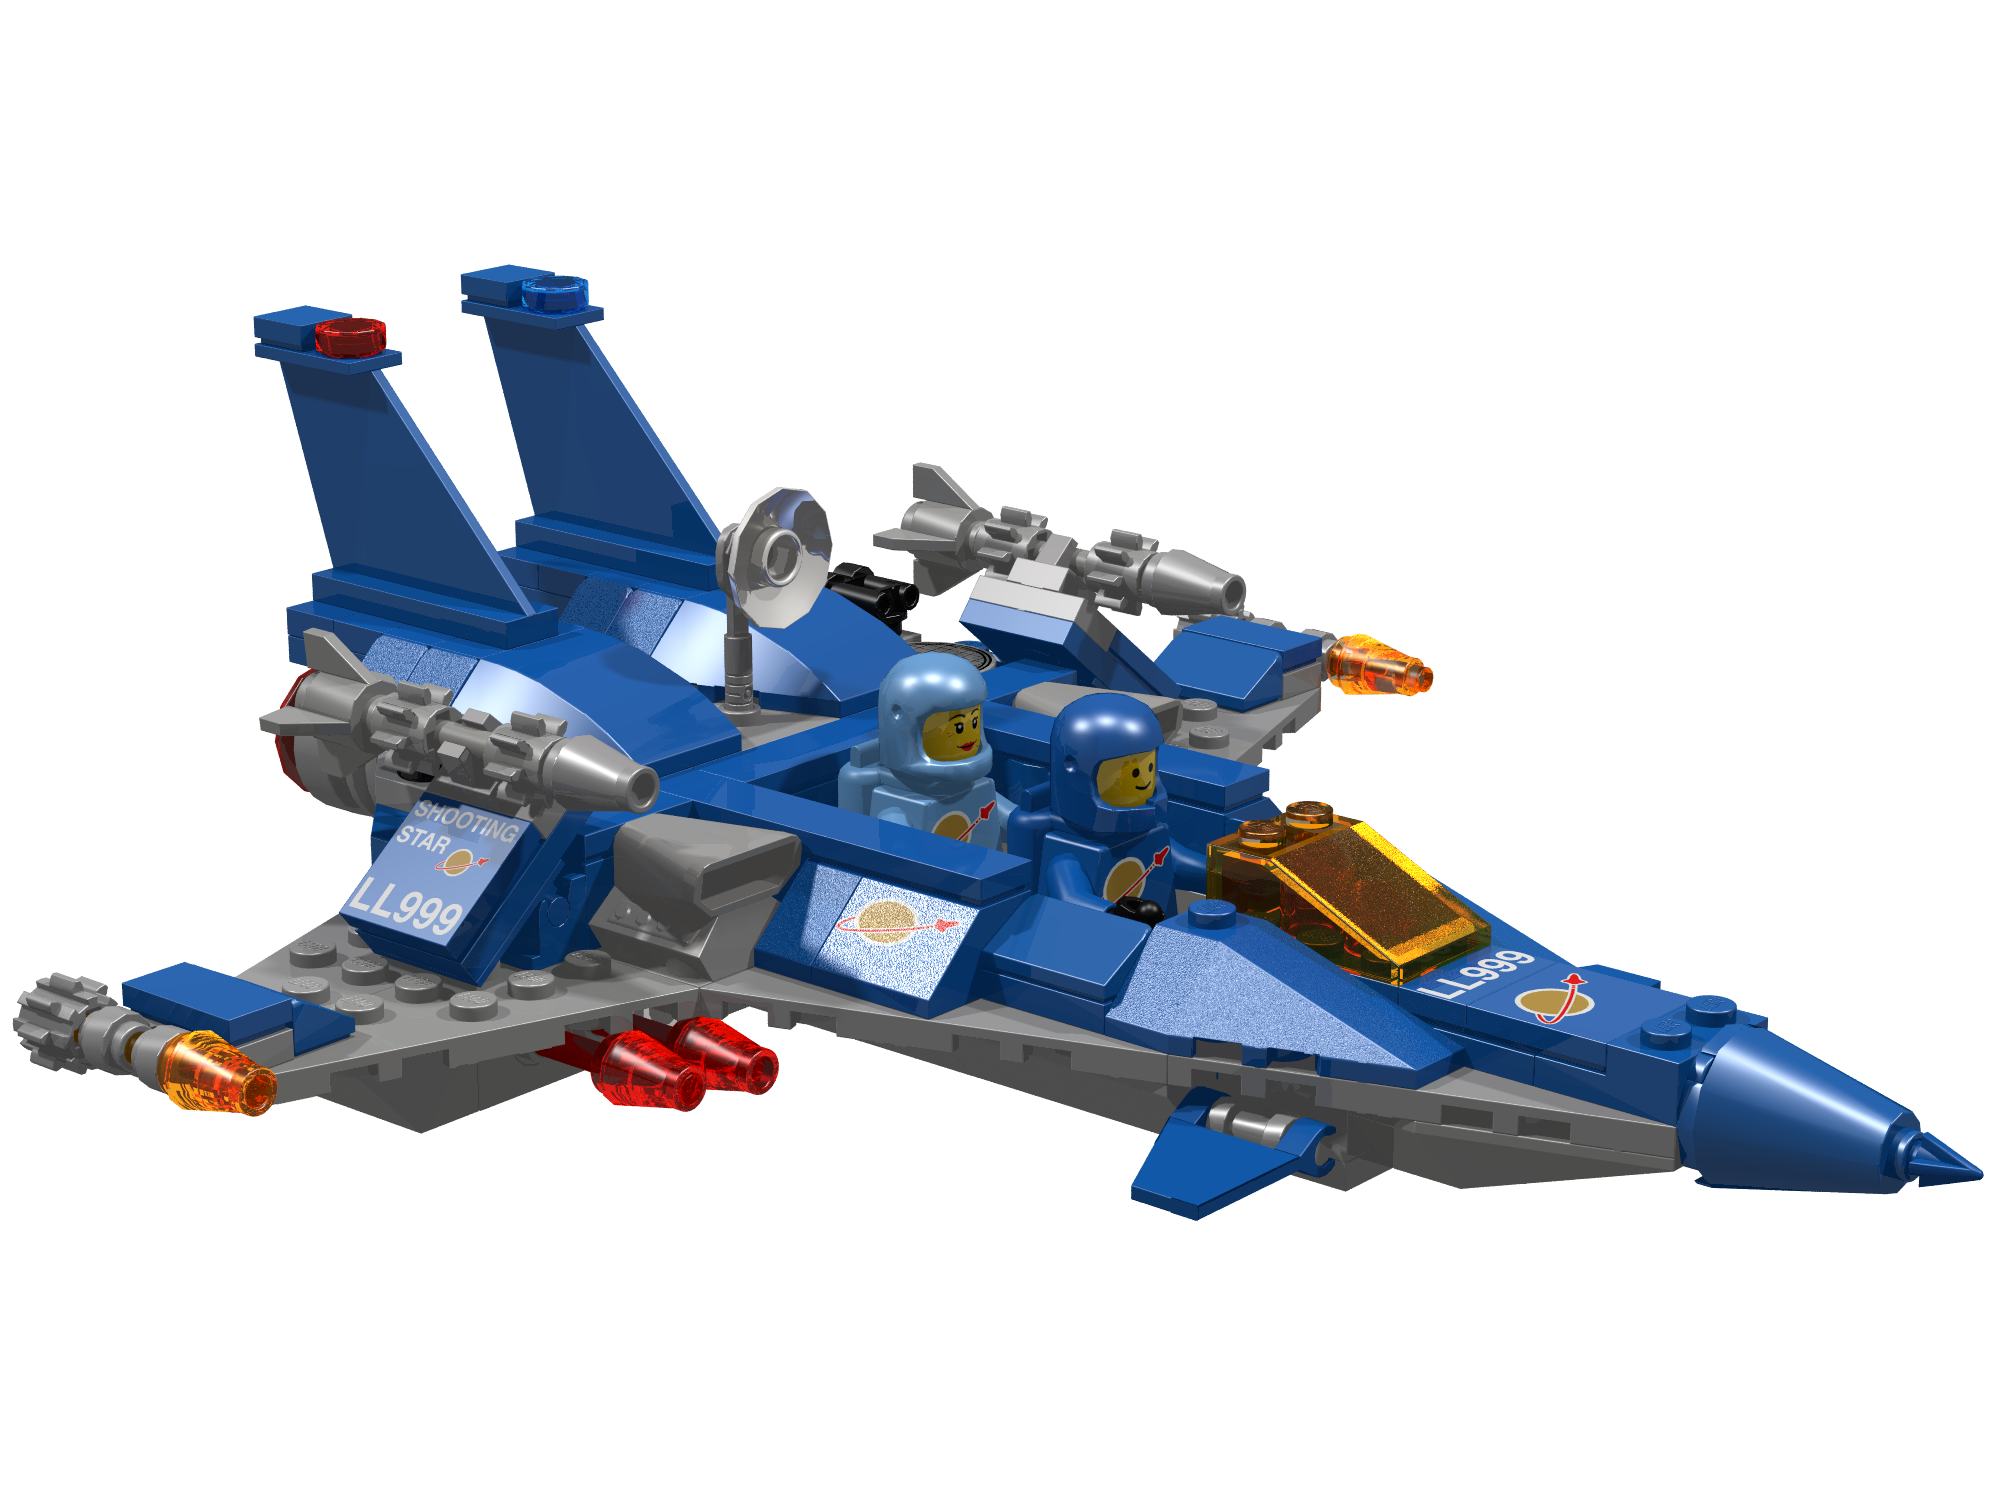 Spaceship png transparent. Lego ideas product stella